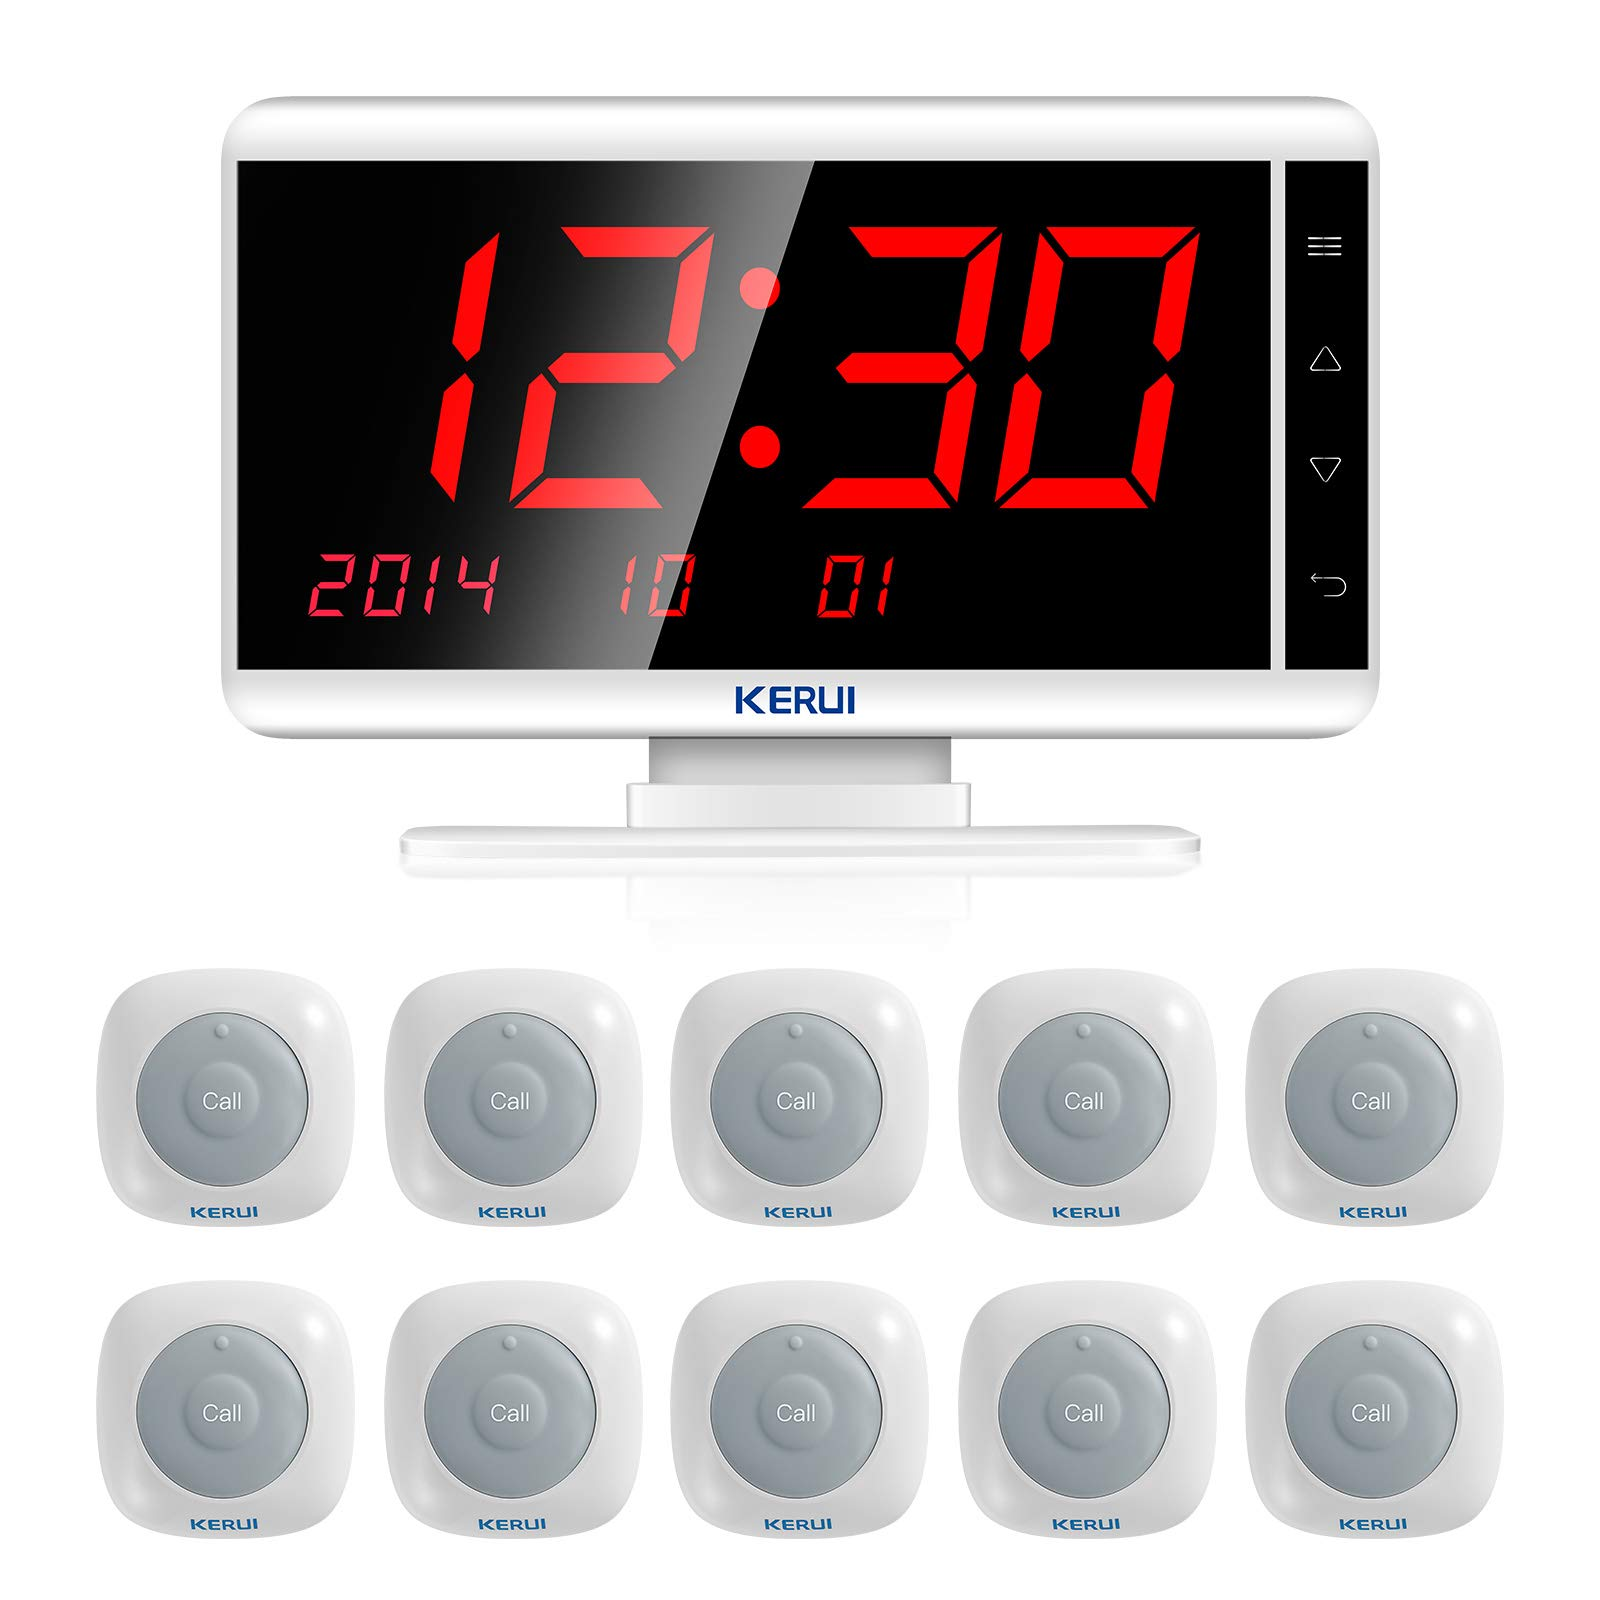 Restaurant Paging System,KERUI Wireless Waiter Server Paging Calling System for Caregiver,Office,Patient,Coffee Shop-Pack of 10 pcs Waterproof Service Buzzers and 1 pc Signal Receiver of KR-C1999 by KERUI